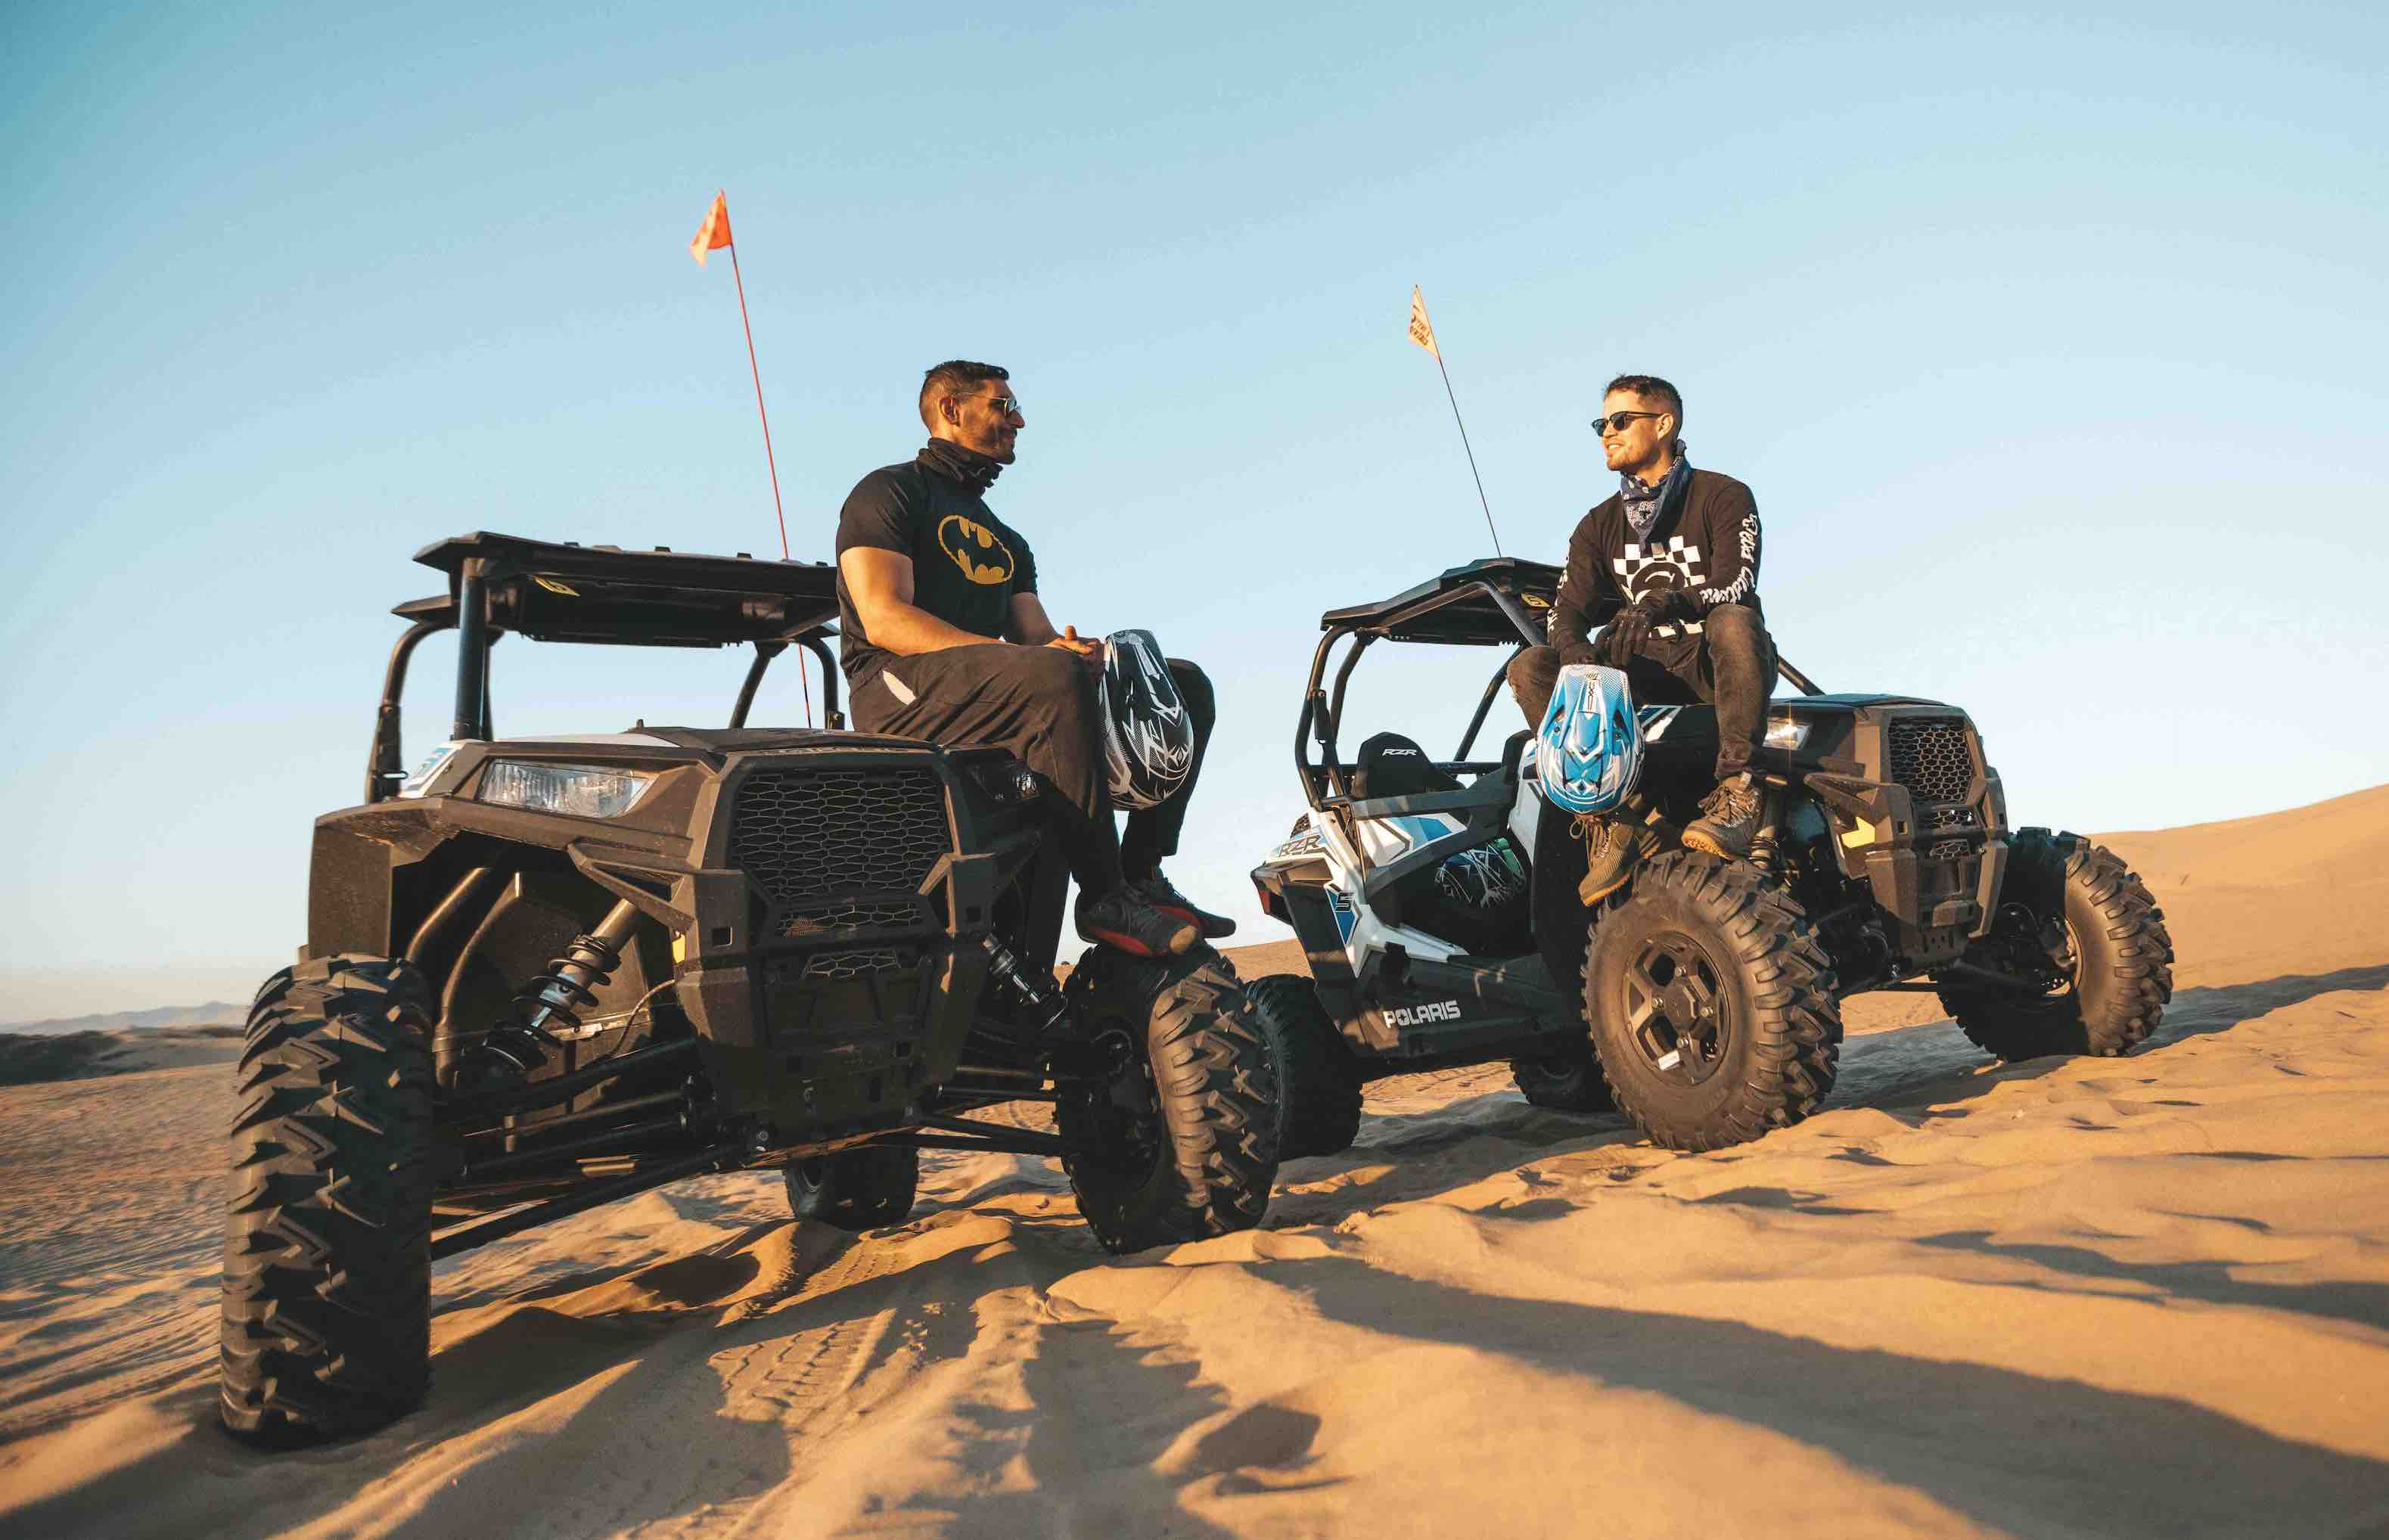 Recreation Vehicles in the desert with 2 men sitting on the wheel and hoods.